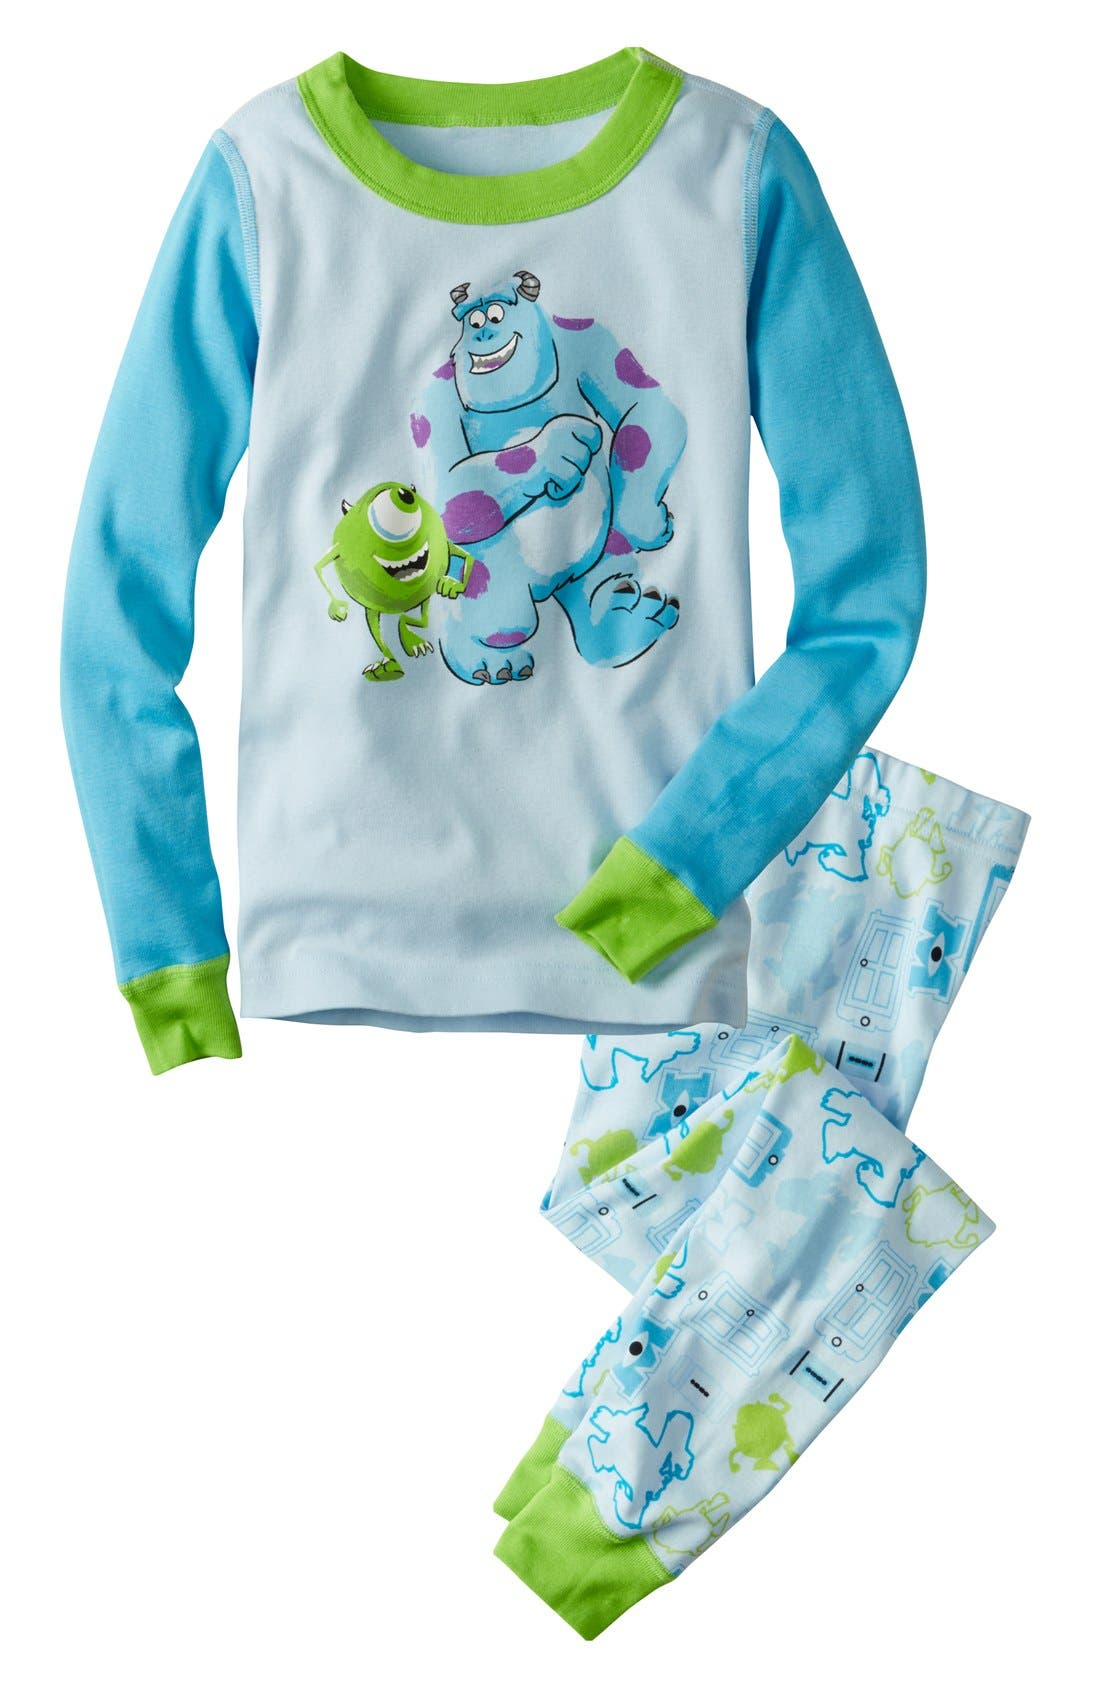 Main Image - Hanna Andersson 'Monsters Inc.™' Two-Piece Organic Cotton Fitted Pajamas (Toddler Boys & Little Boys)